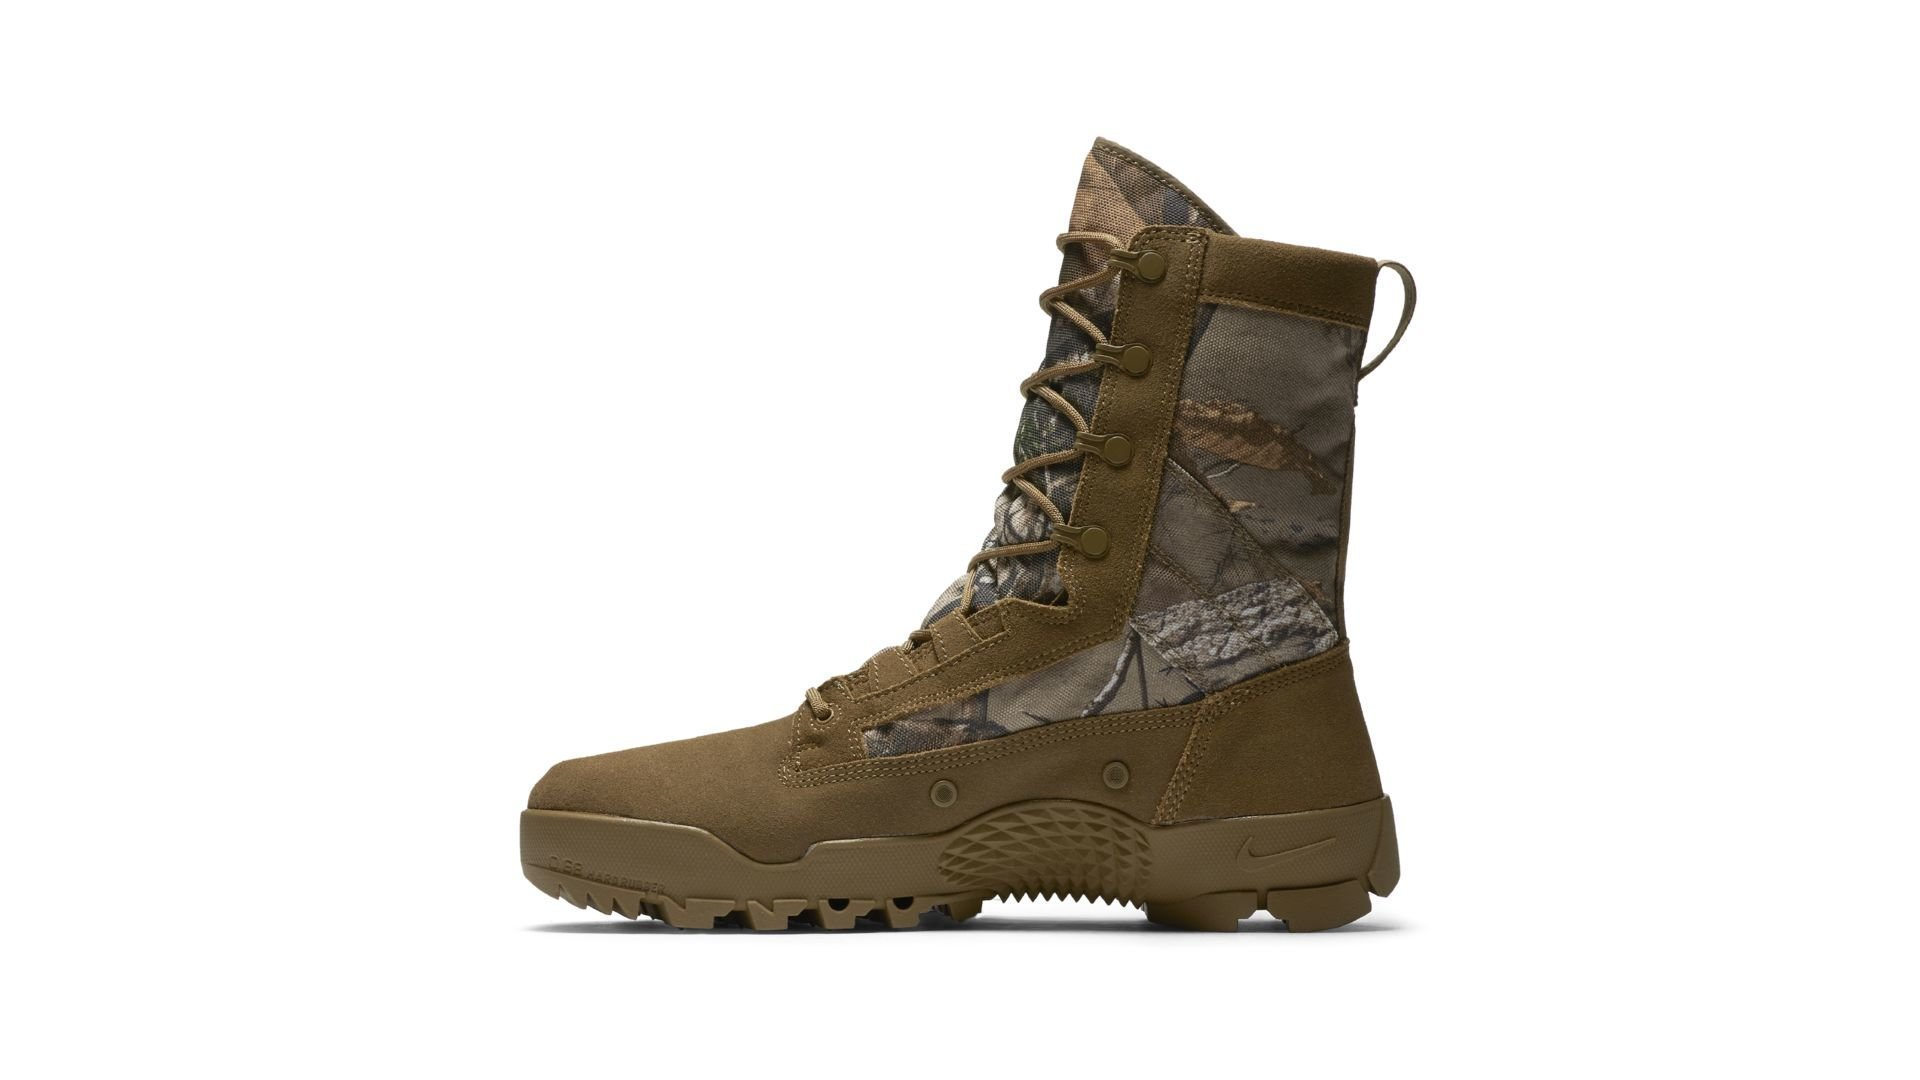 Nike SFB 8″ Boot Jungle Realtree (845168-990)